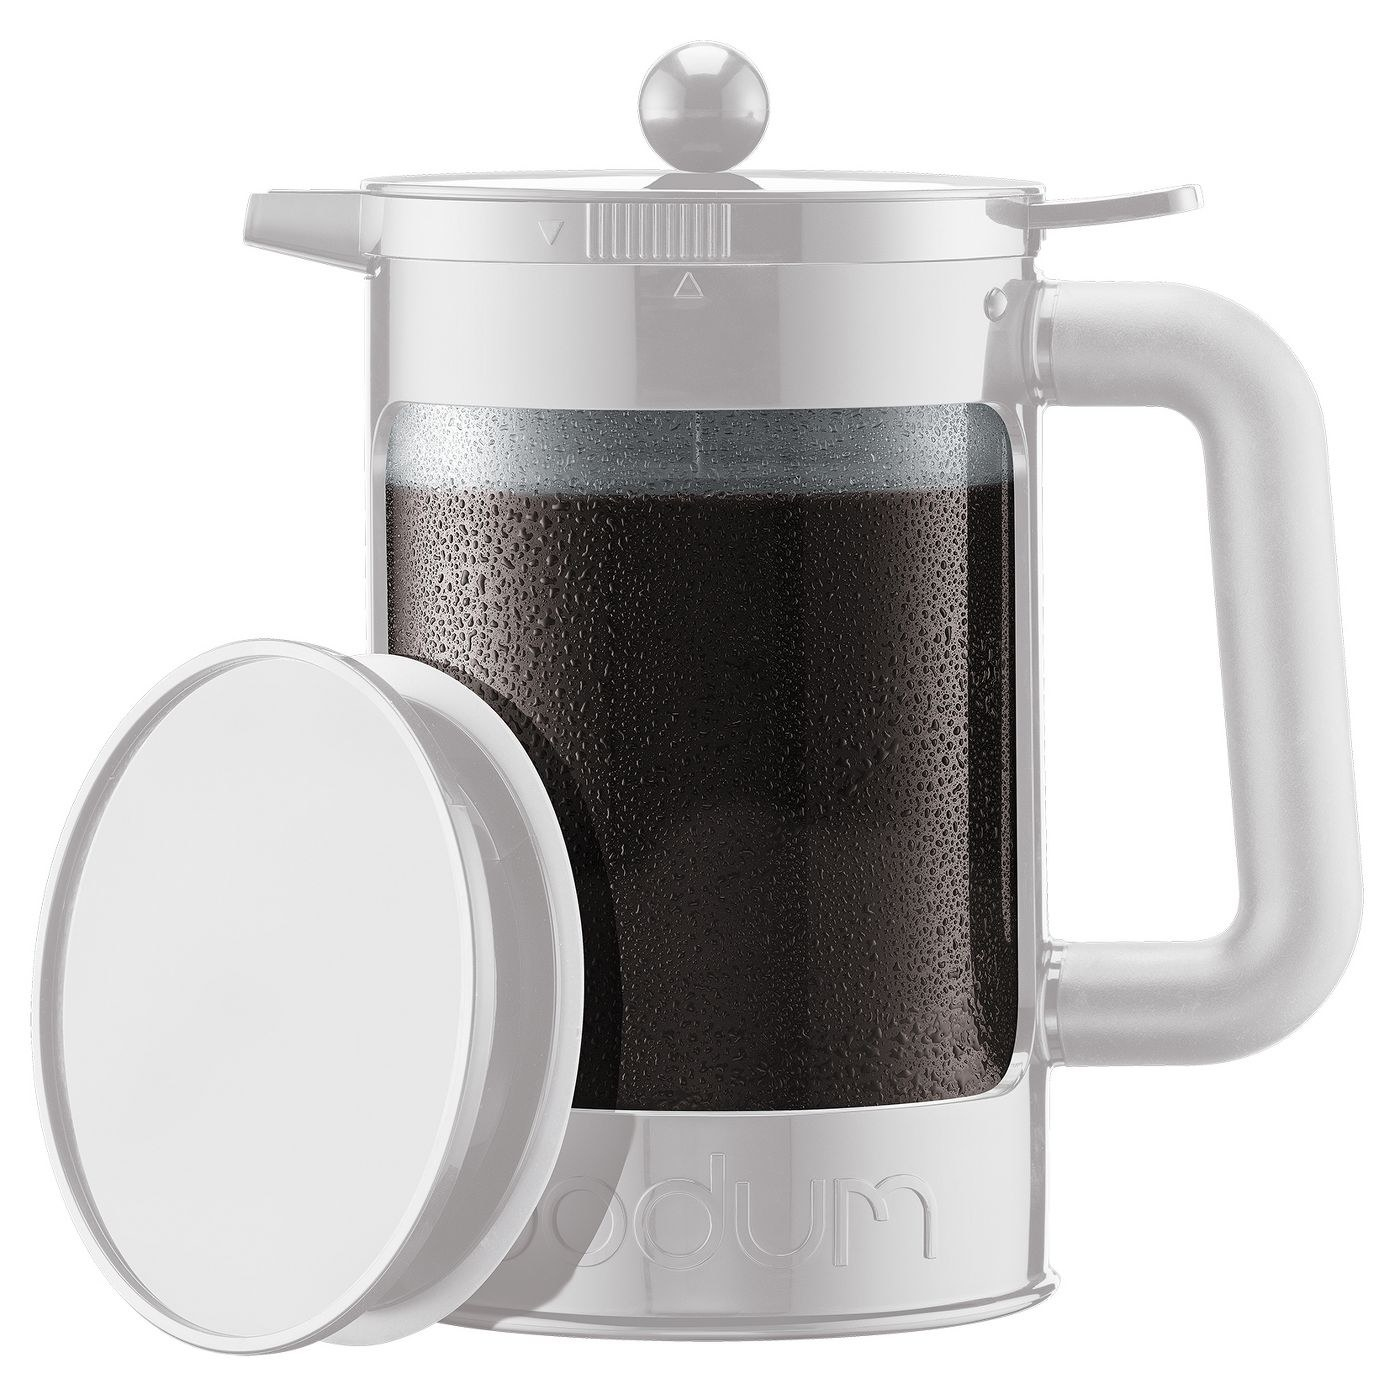 A white coffee brewer with a clear jar filled with cold brew